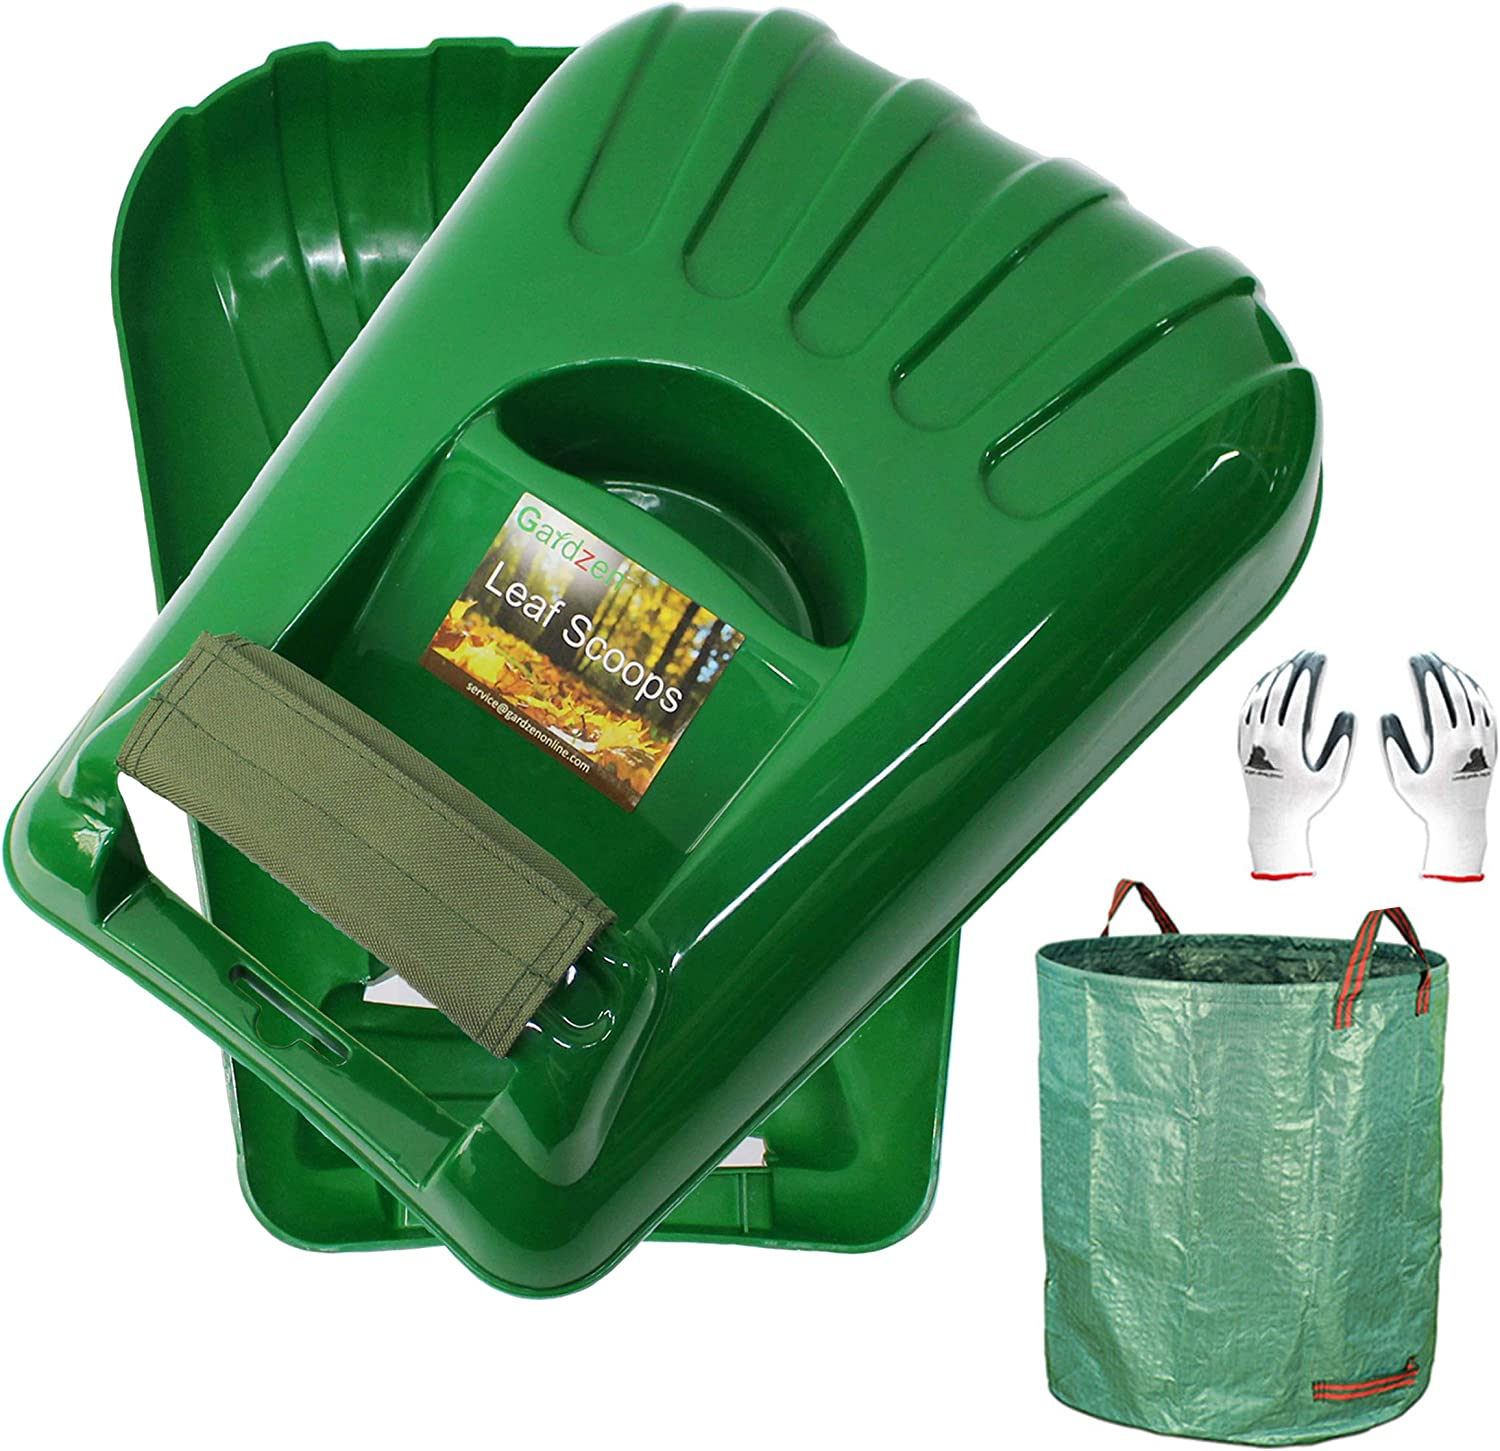 Max 58% OFF Gardzen Large Leaf SEAL limited product Scoop Hand Rakes Yard Remov Waste Debris and